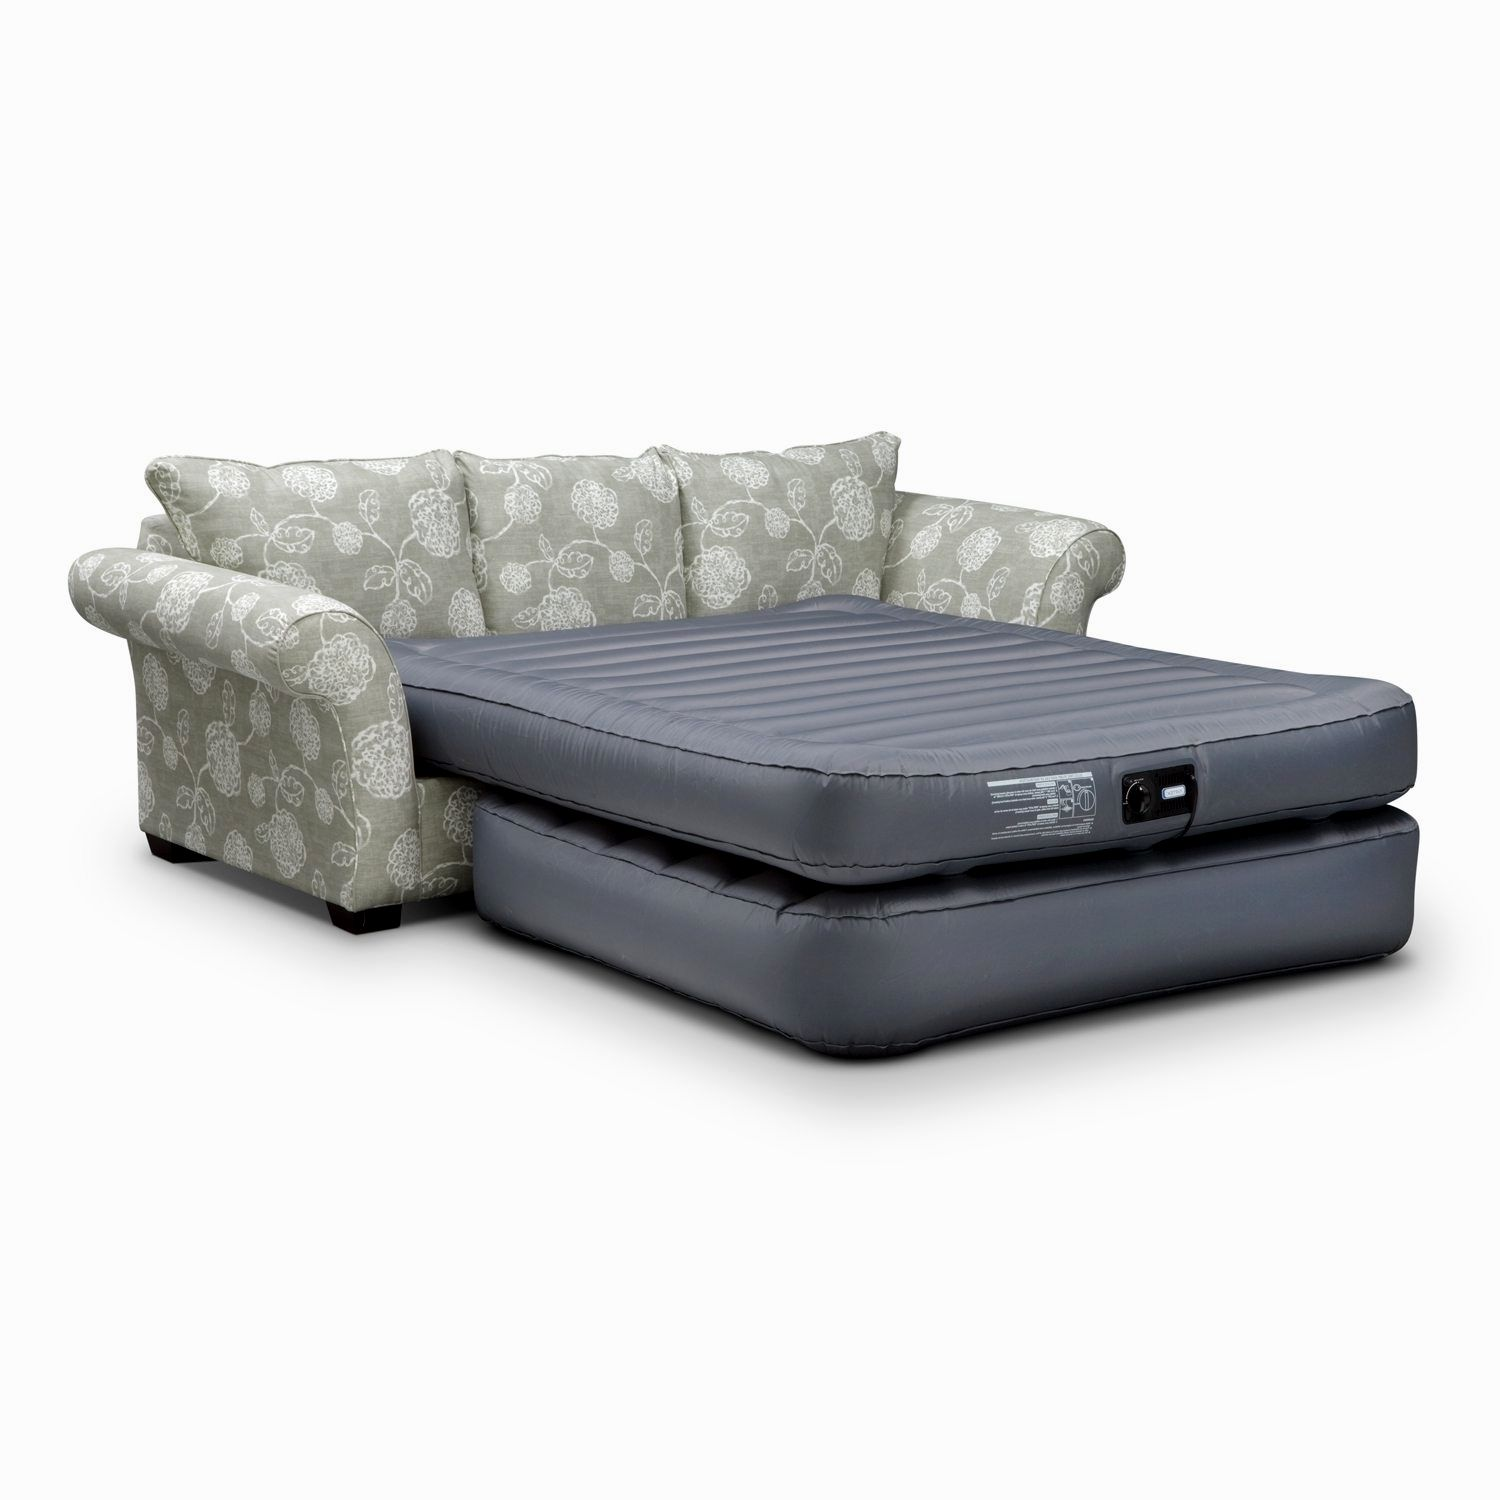 modern pull out sleeper sofa photo-Superb Pull Out Sleeper sofa Layout